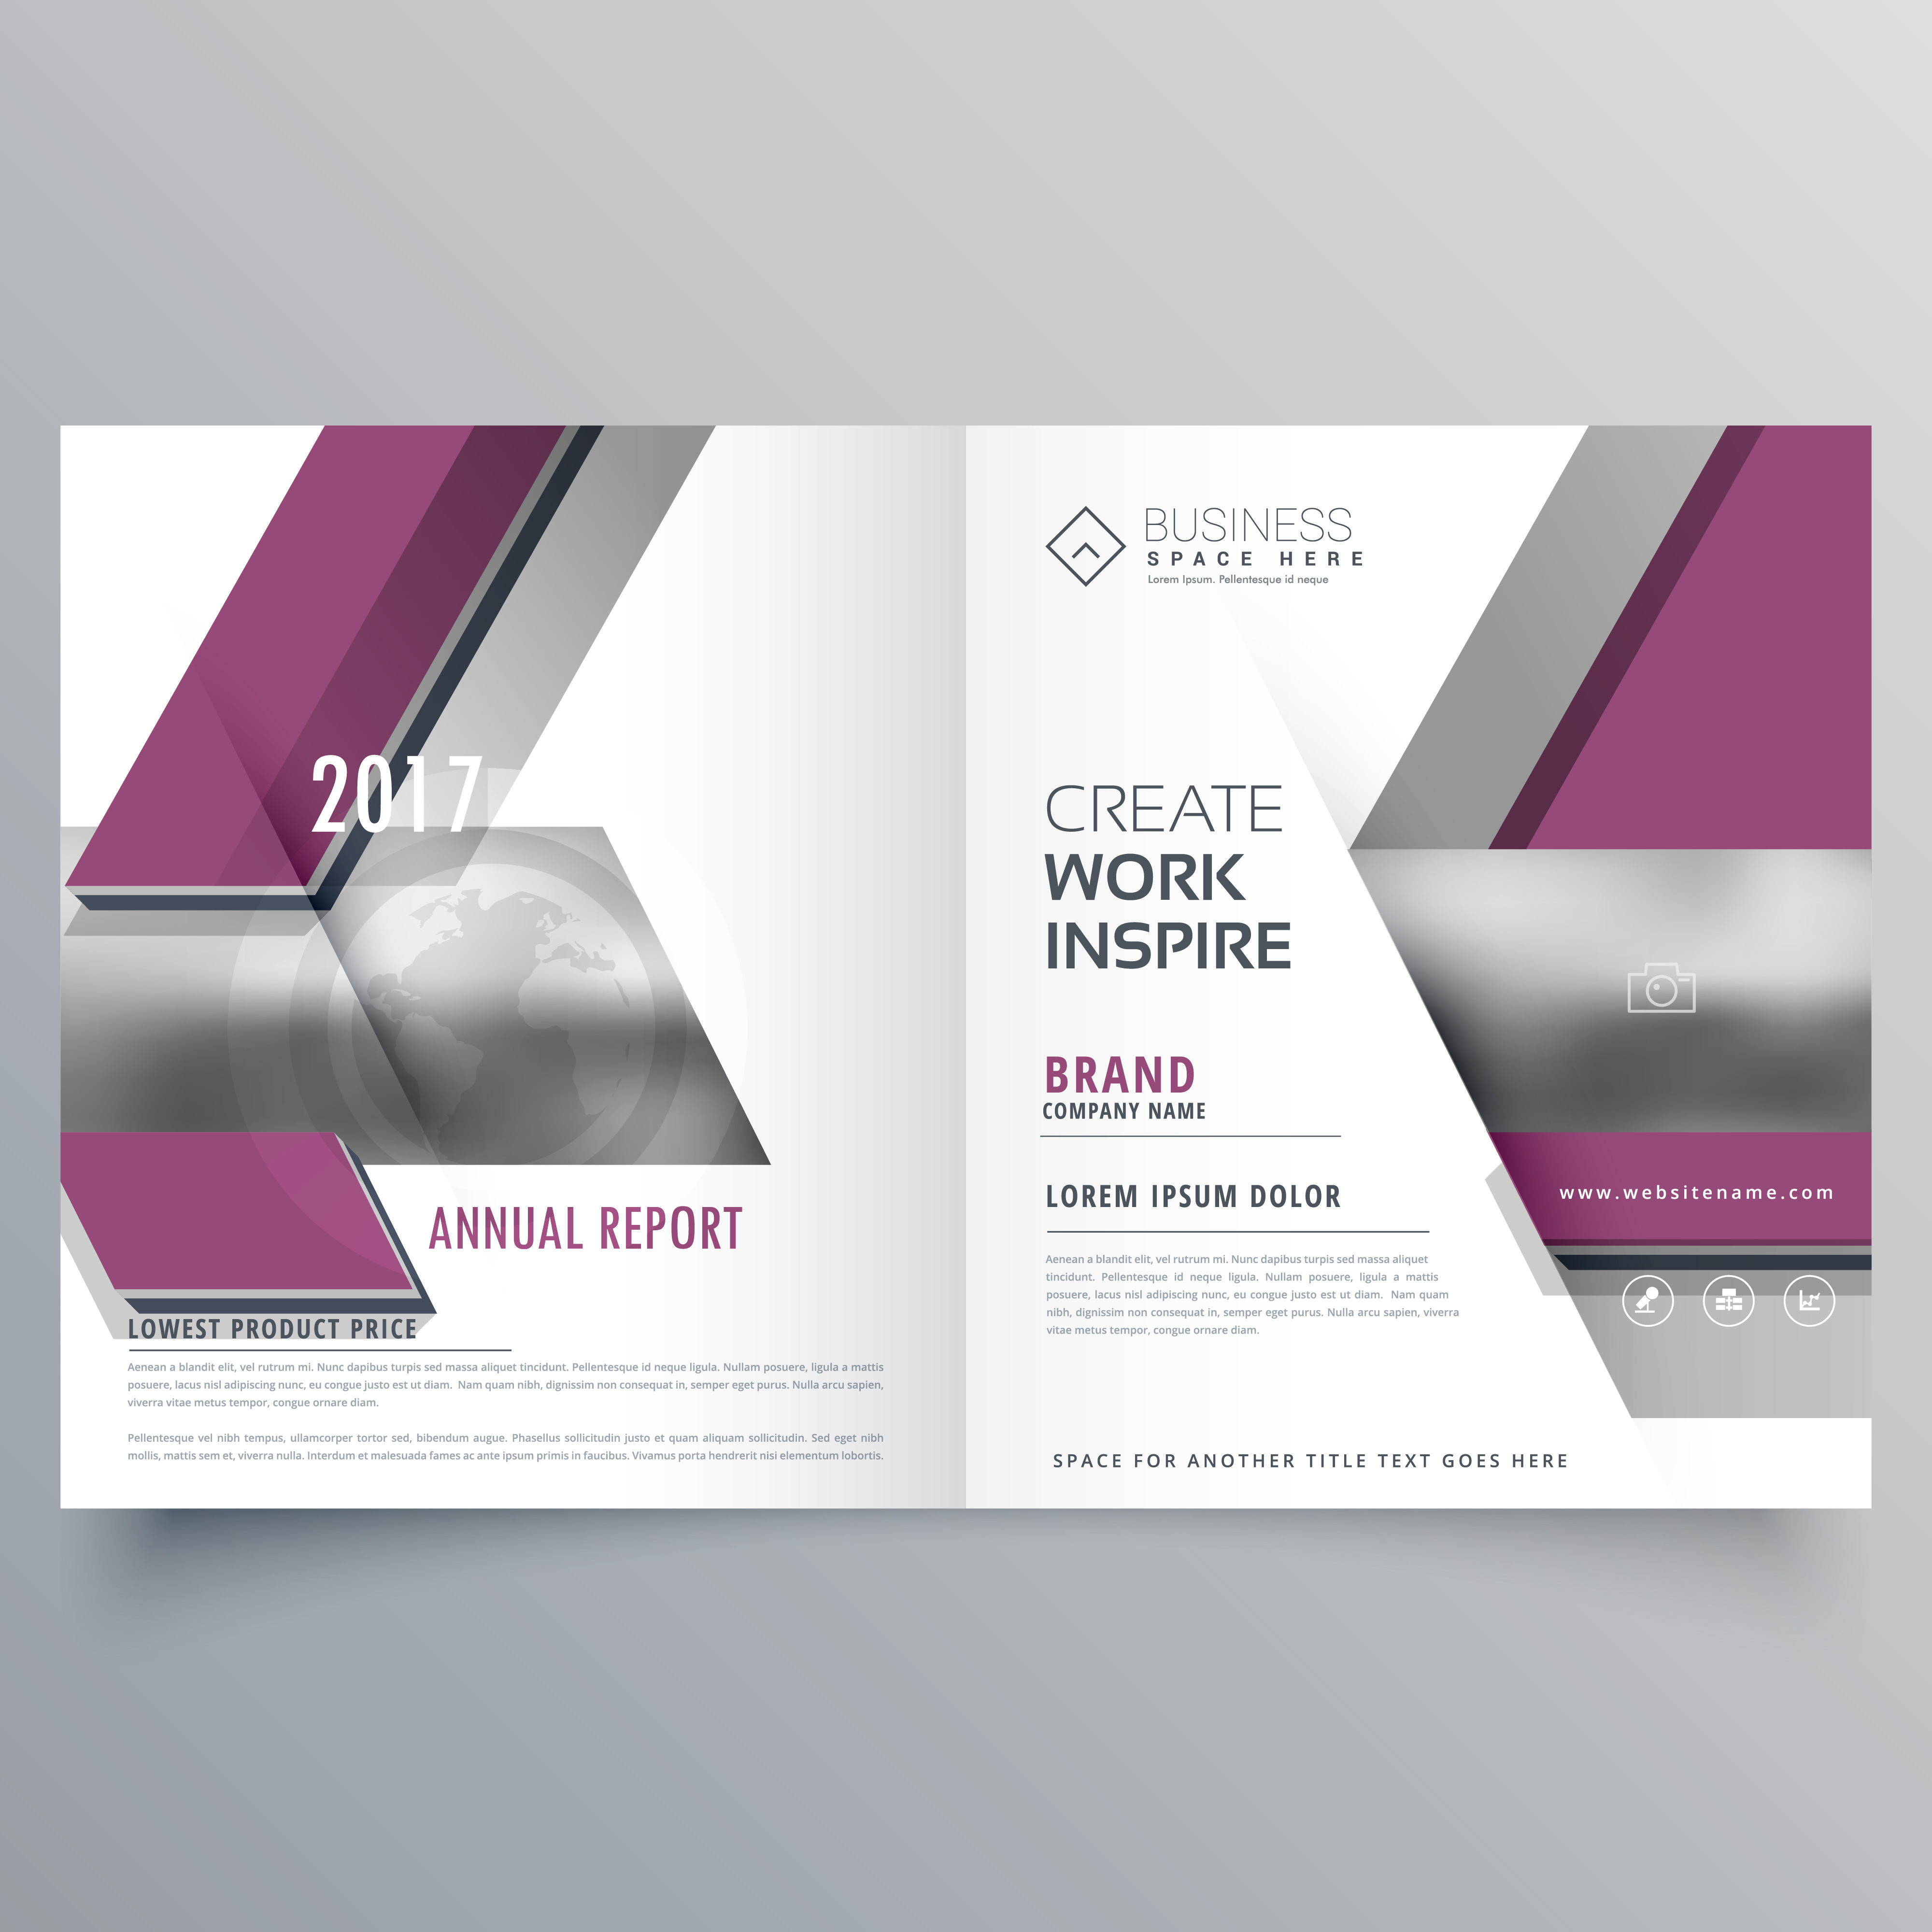 Business Brochure Cover Design Business Brochure: Bi Fold Business Brochure Design Template Leaflet Magazine